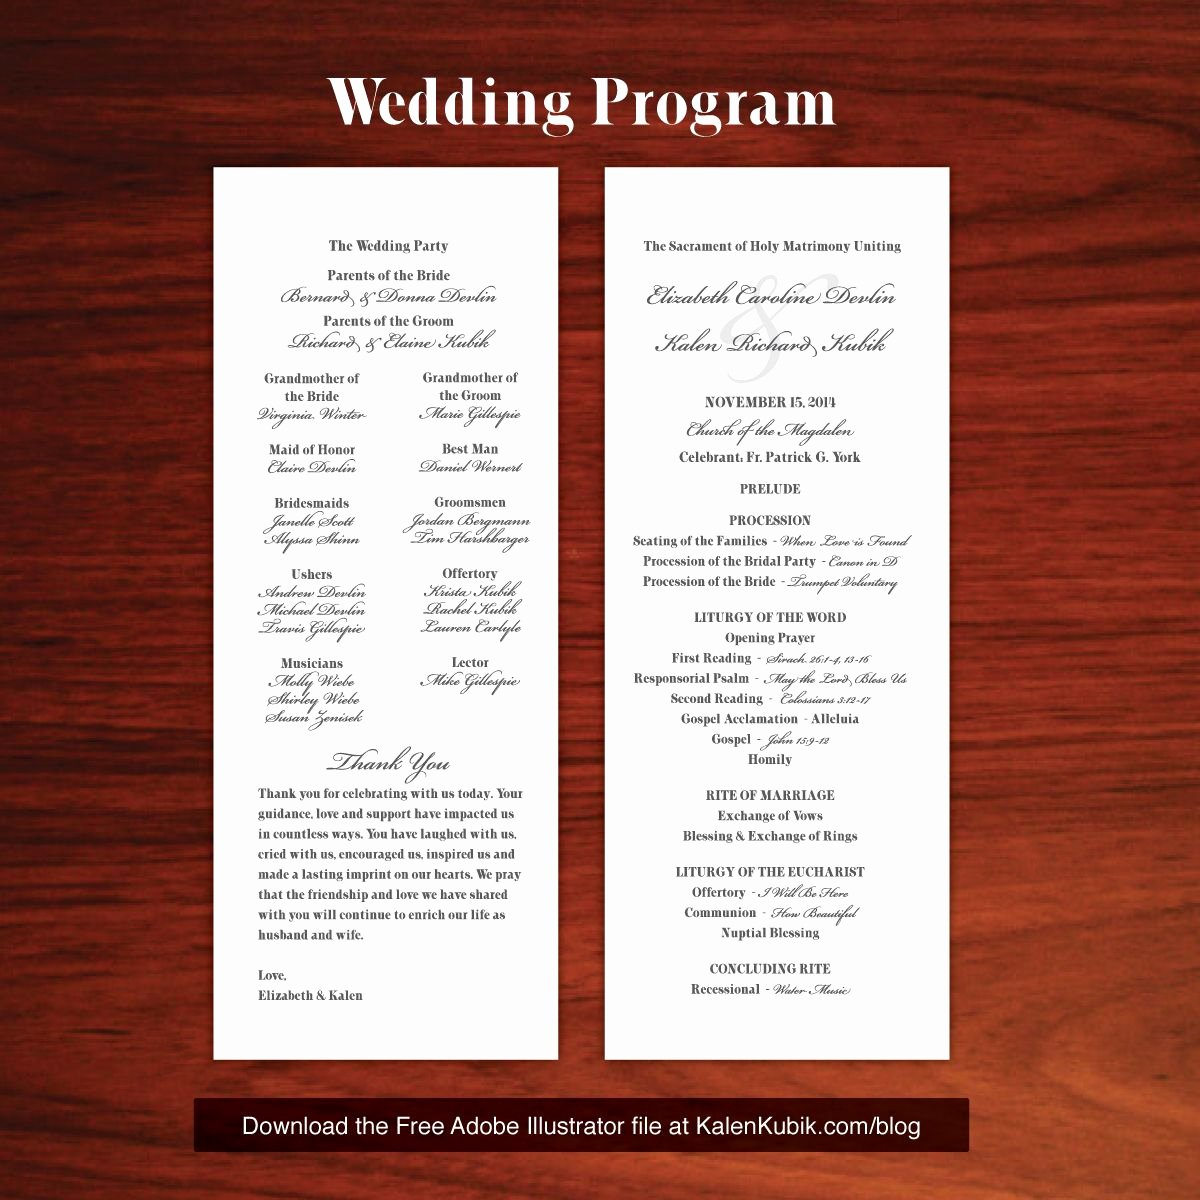 Catholic Wedding Program Templates Free Elegant Free Diy Catholic Wedding Program Ai Template I M A